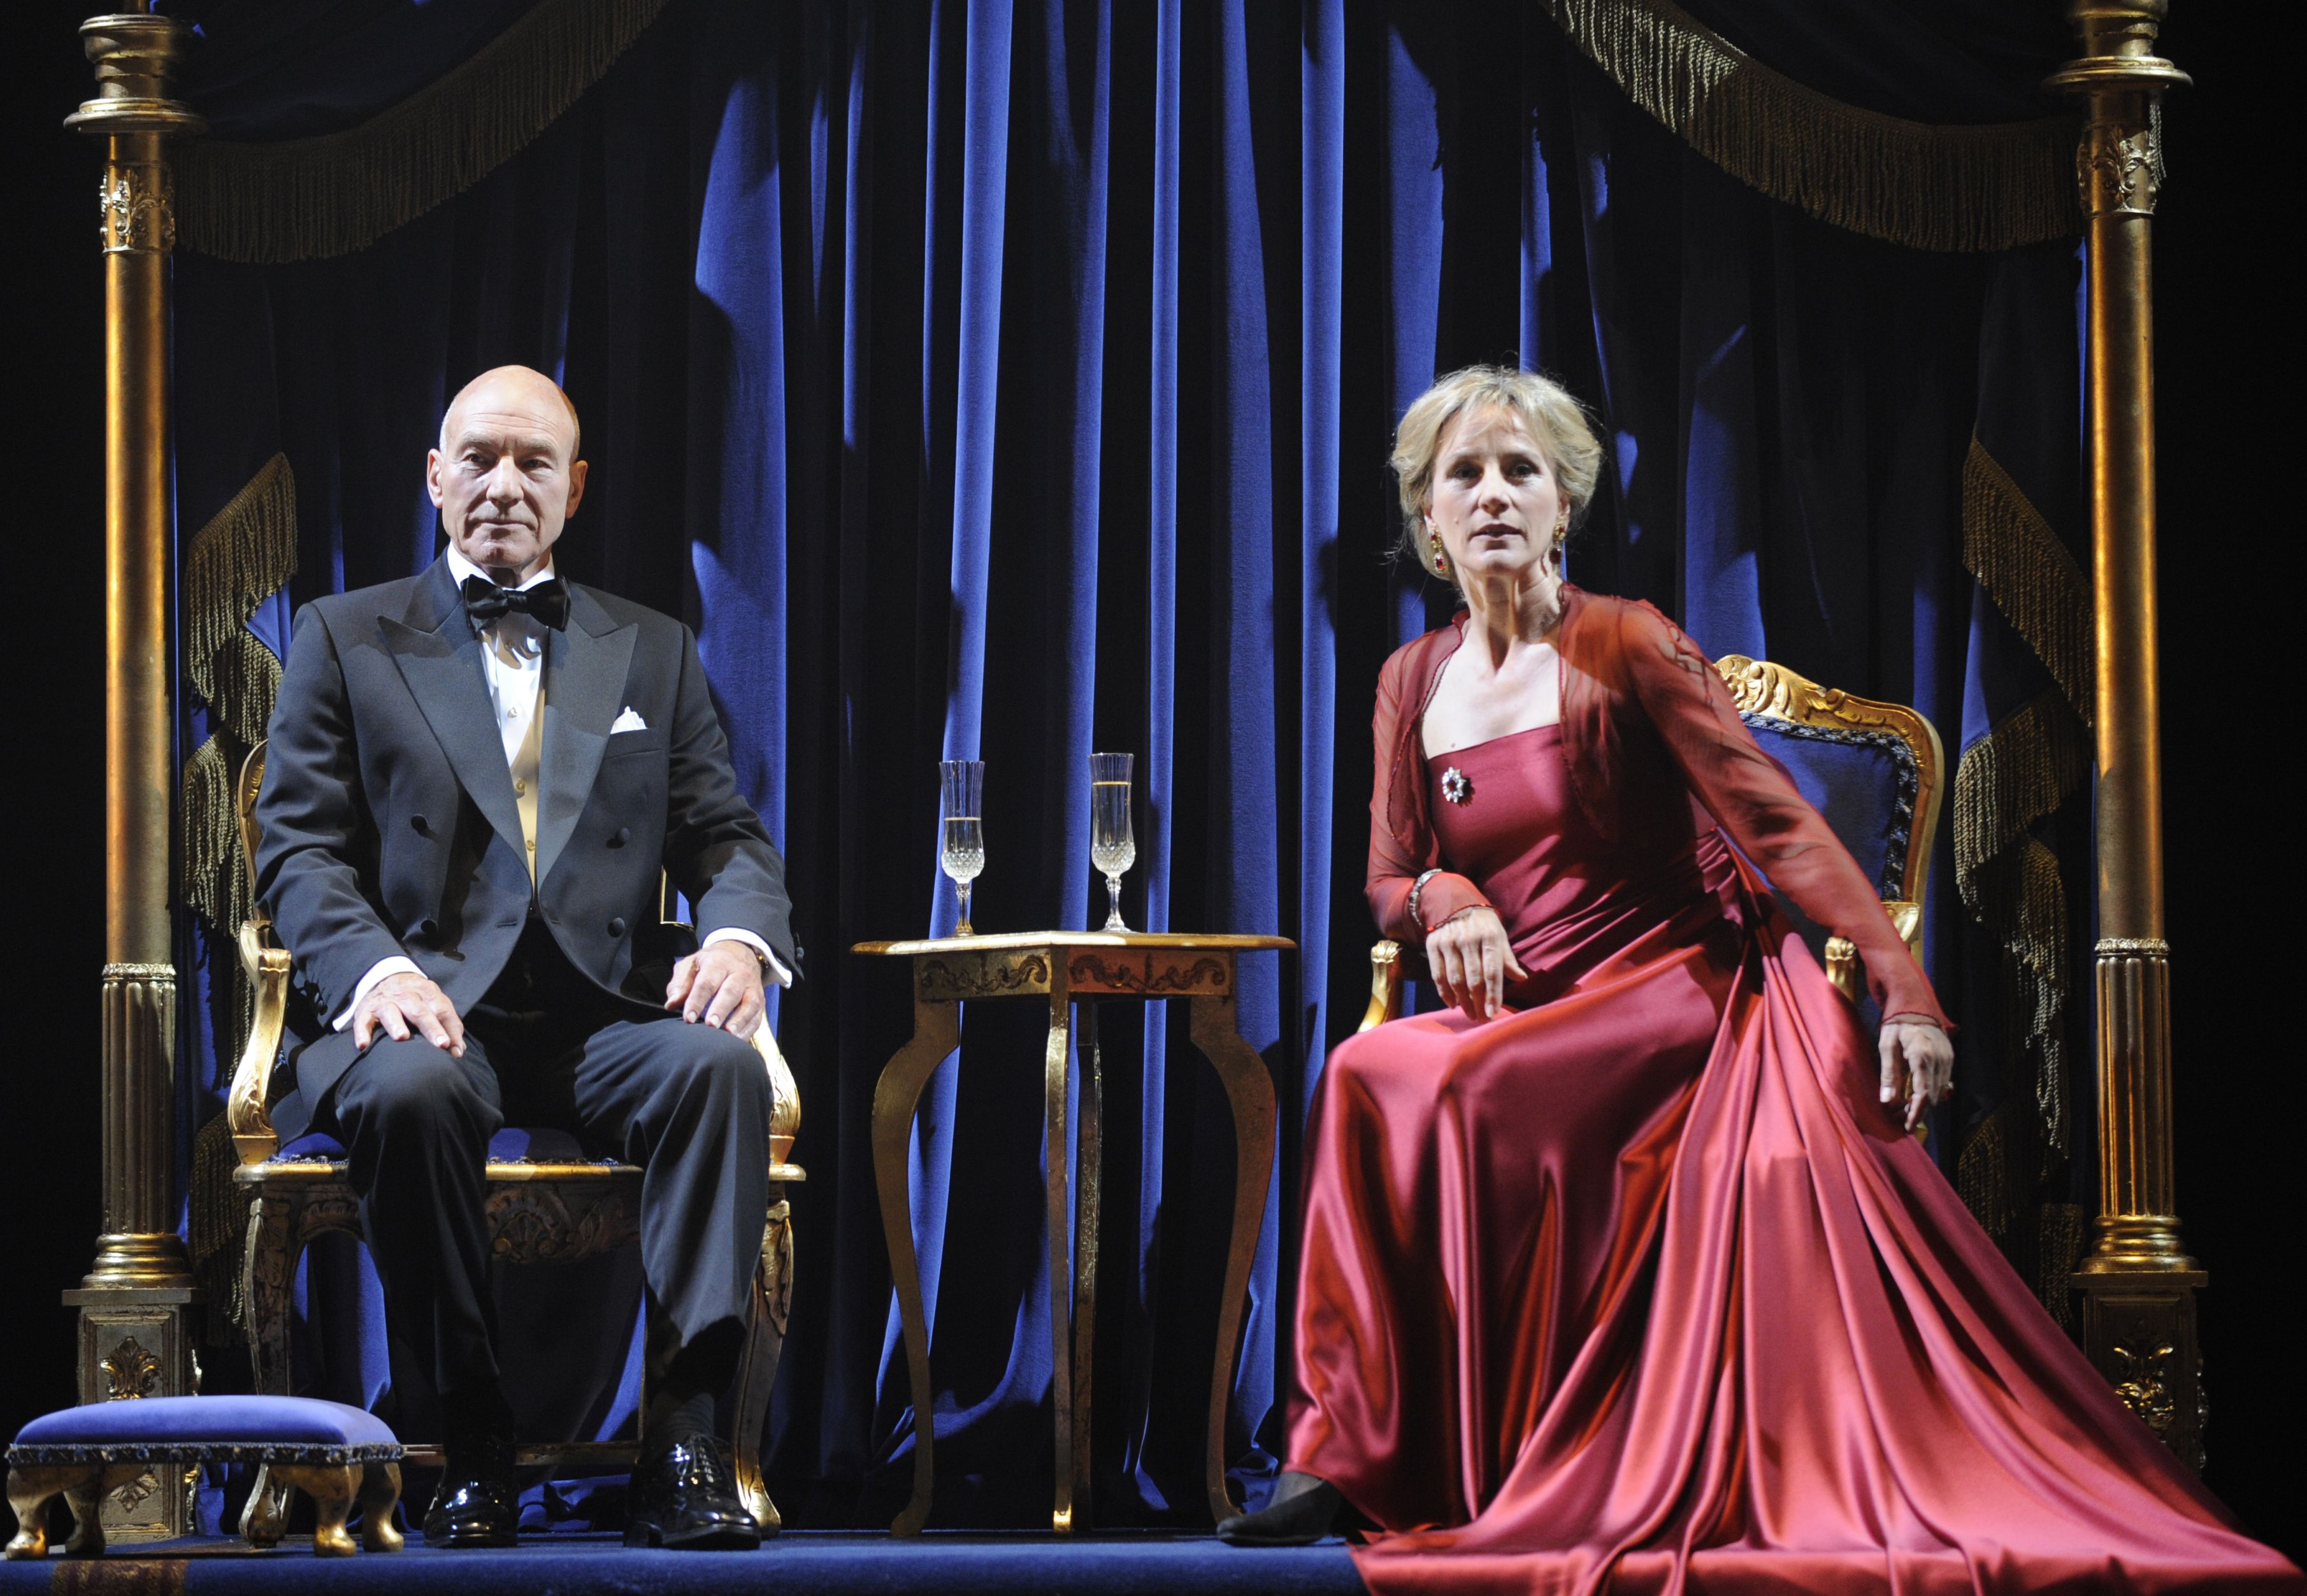 Patrick Stewart and Penny Downie in Shakespeare's play Hamlet.